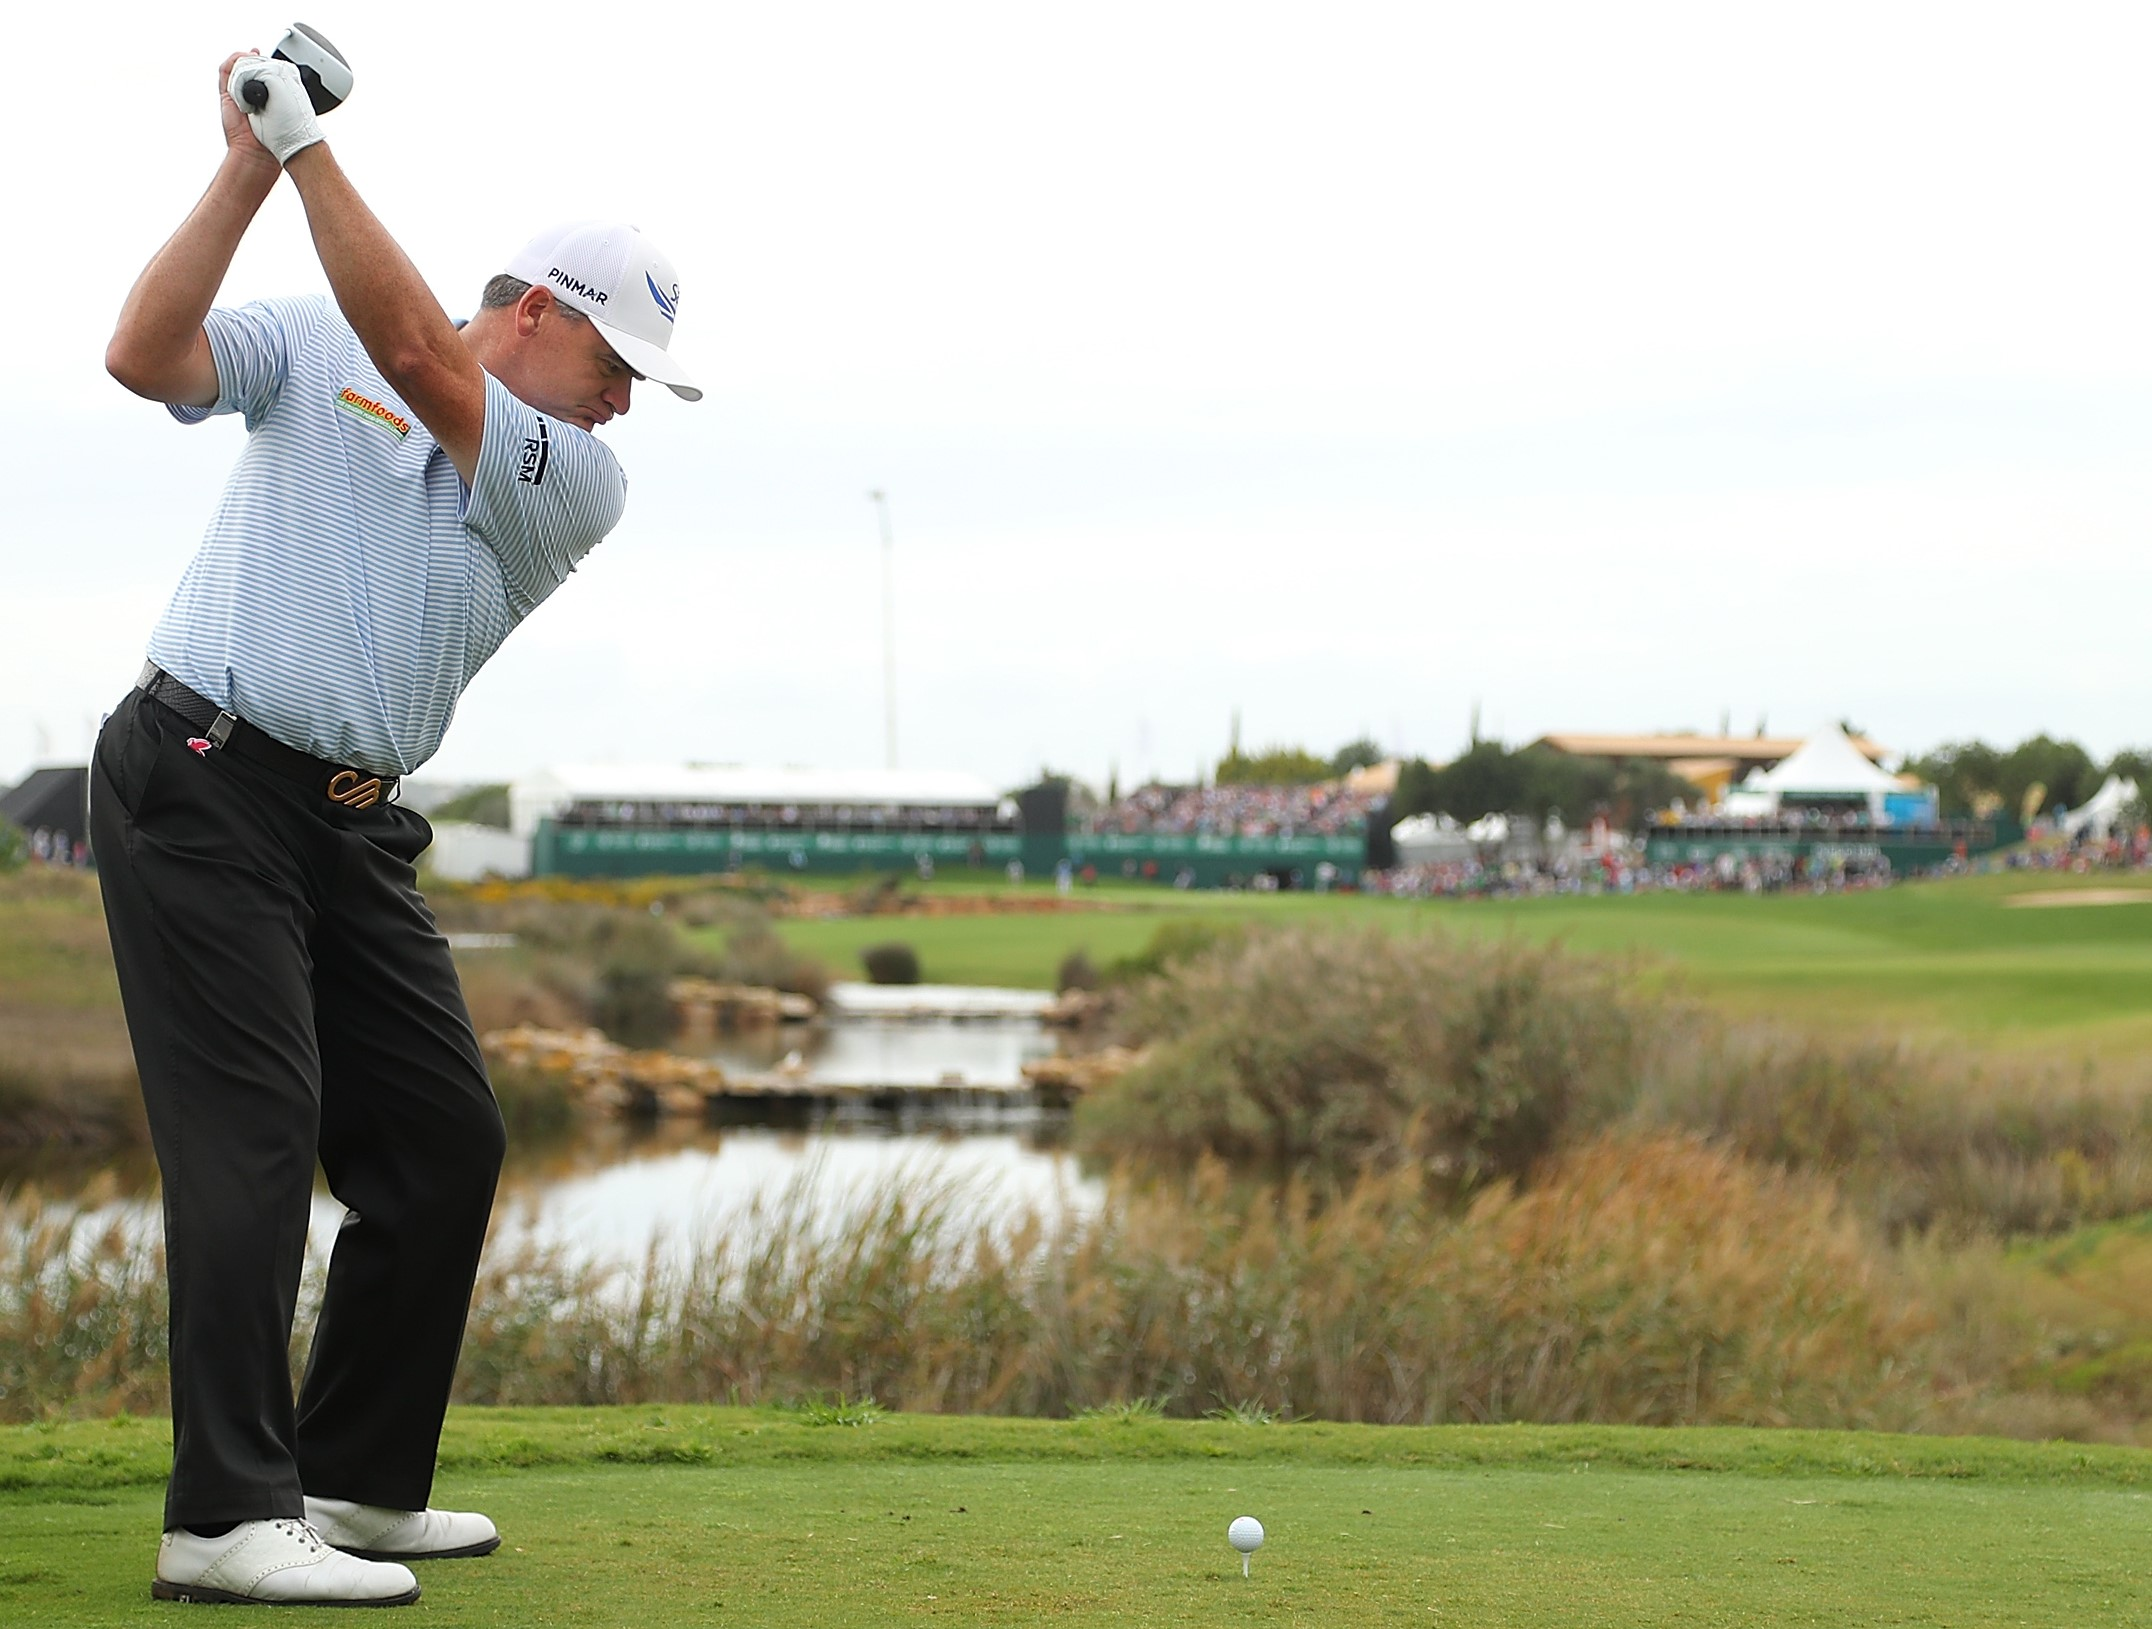 VILAMOURA, PORTUGAL - OCTOBER 23:  Paul Lawrie of Scotland tees off on the 18th hole during day four of the Portugal Masters at Victoria Clube de Golfe on October 23, 2016 in Vilamoura, Portugal.  (Photo by Richard Heathcote/Getty Images)